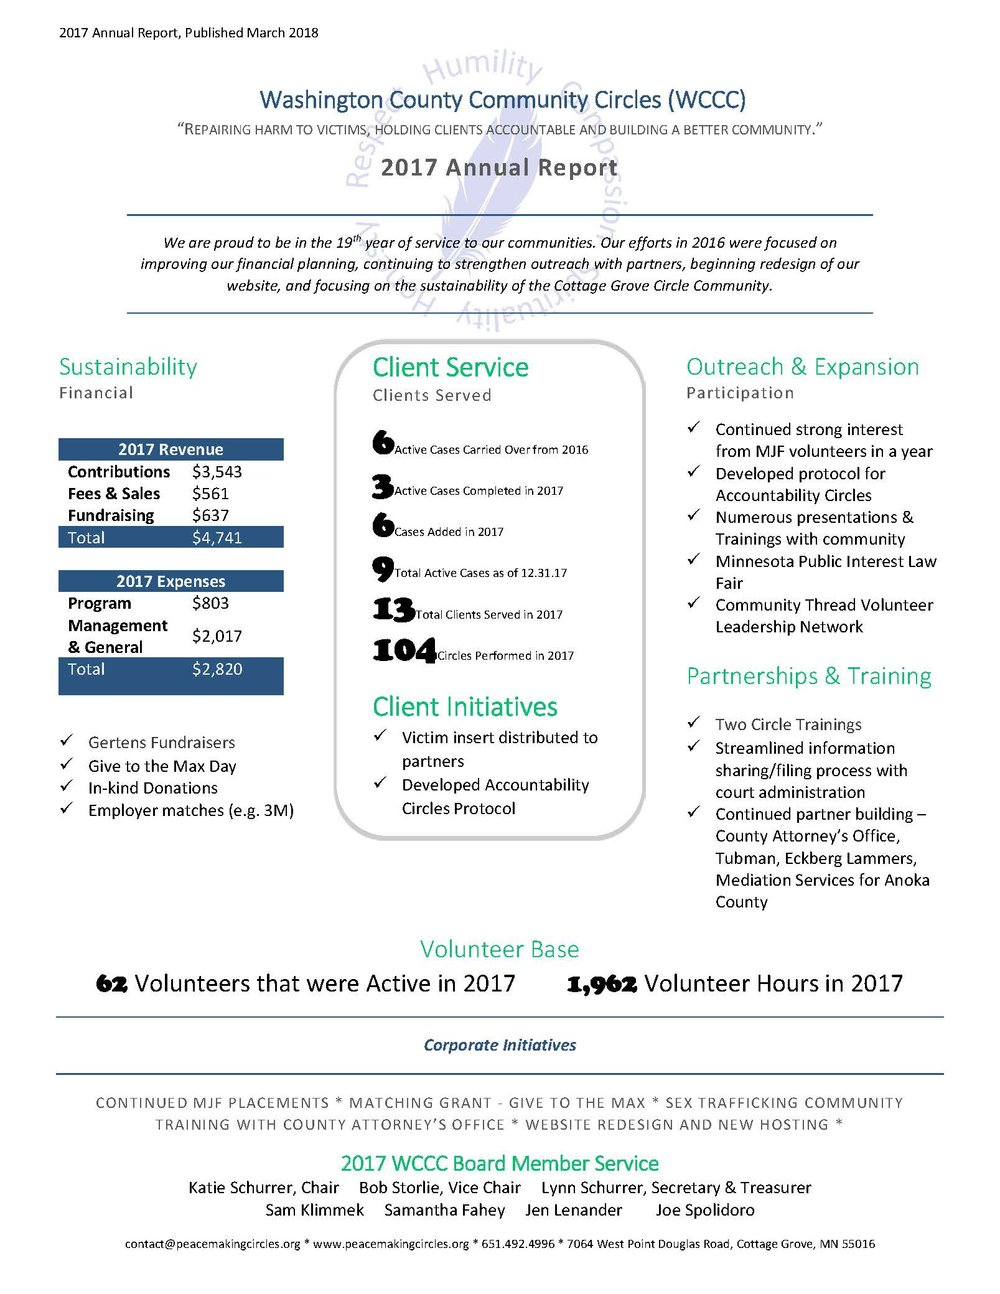 2018 Annual Report for 2017 Public.jpg